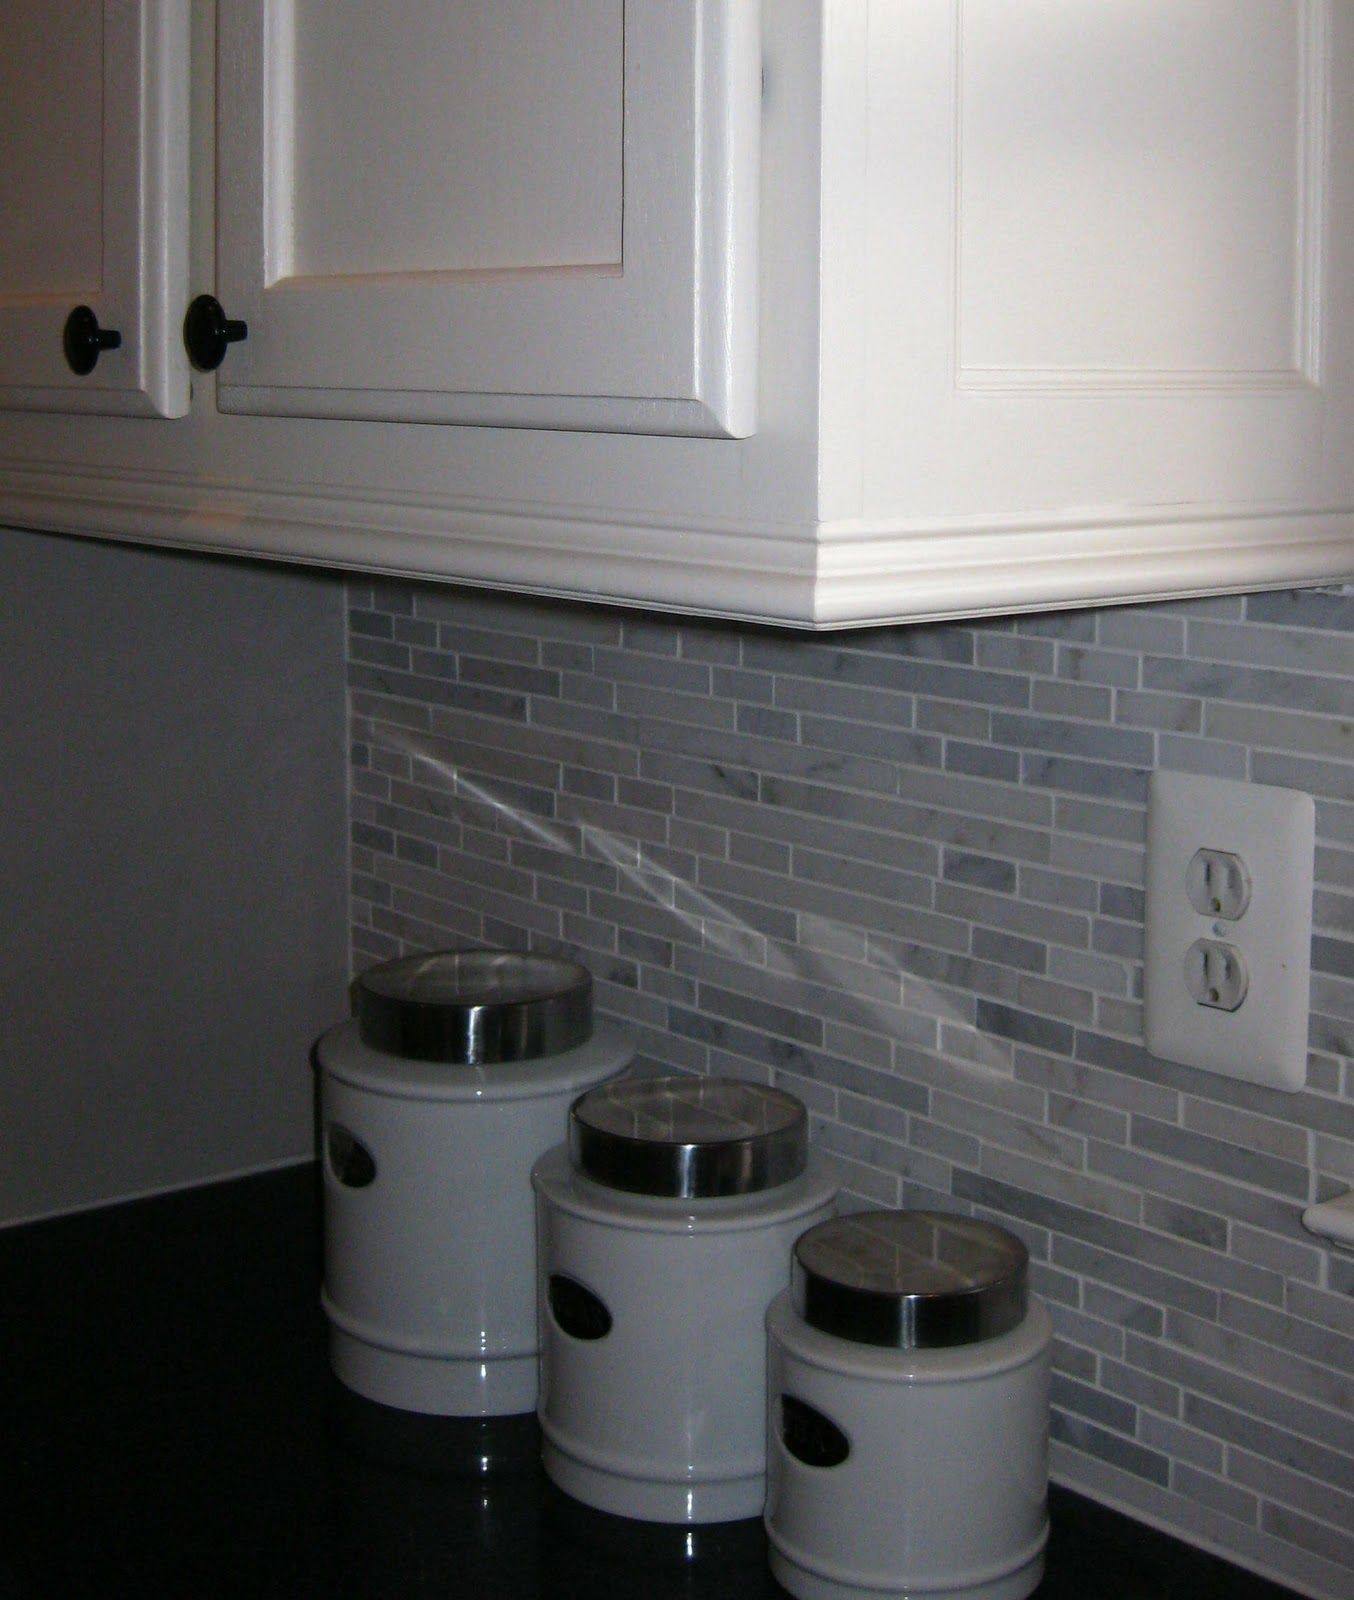 Crown Molding Added To Bottom Of Cabinets I Like This Idea Perfect To Hide Strips Of Light For U Kitchen Cabinet Molding New Kitchen Cabinets Cabinet Molding